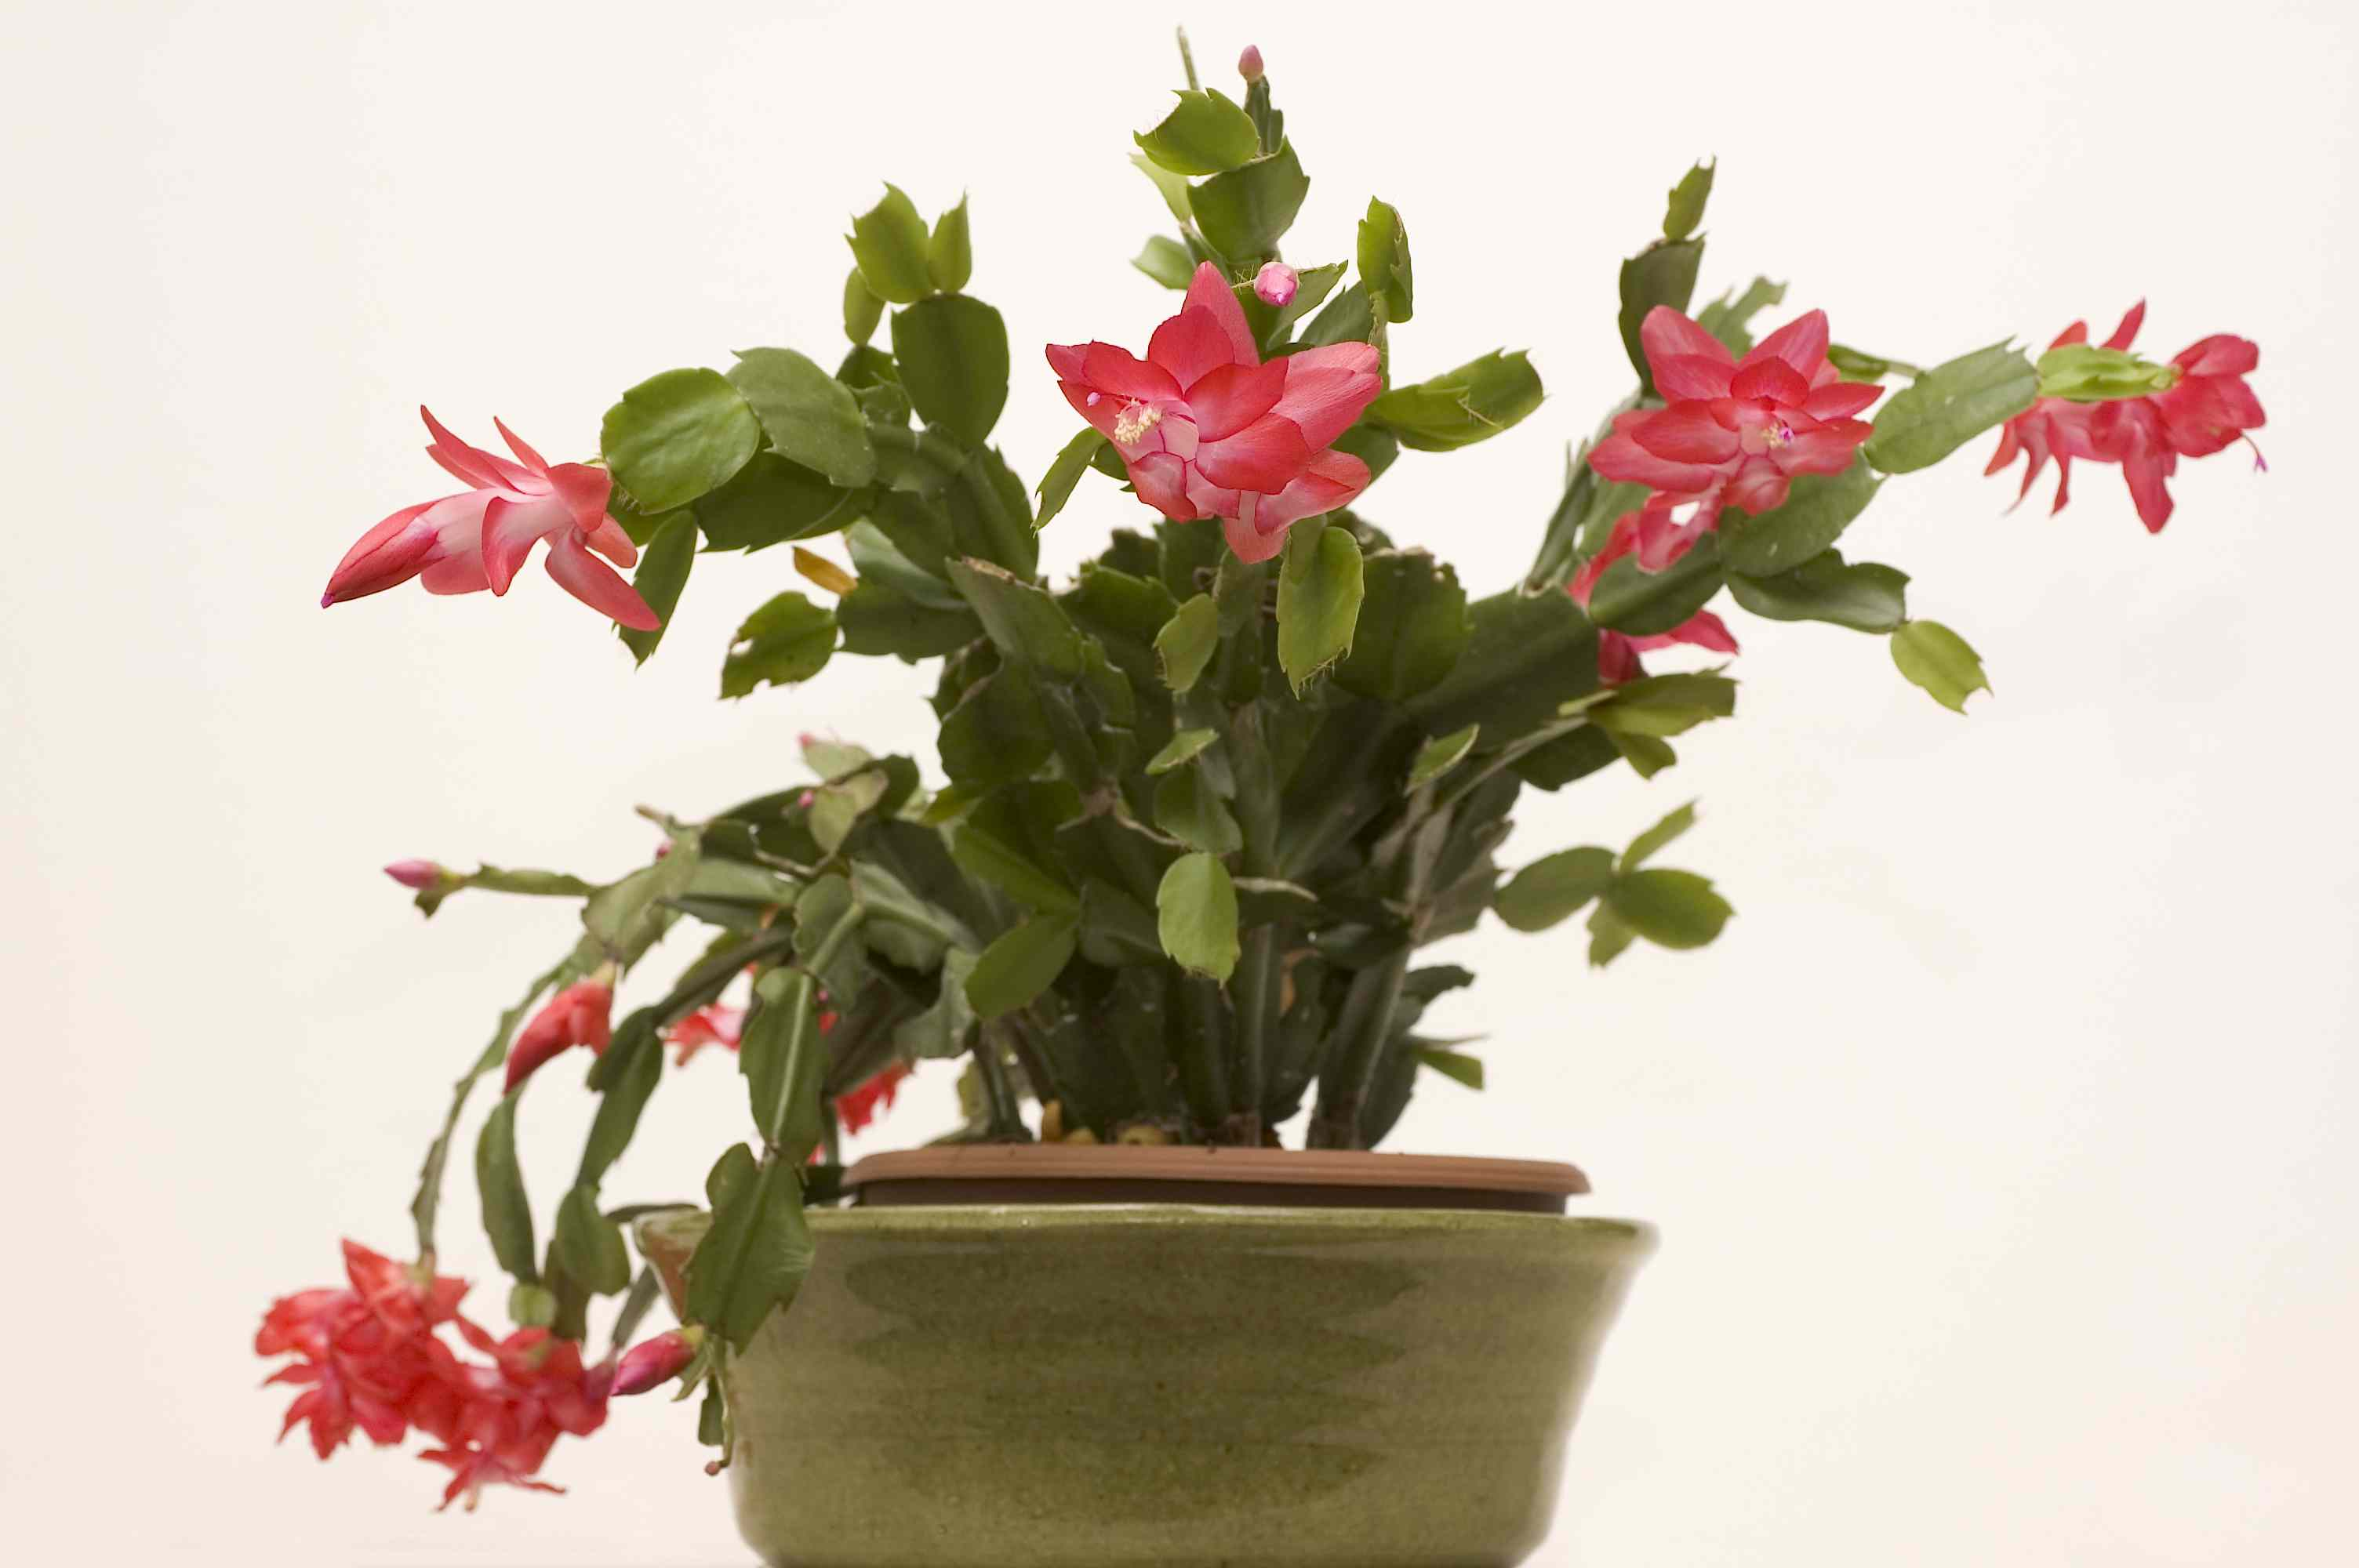 Christmas cactus plant in bloom